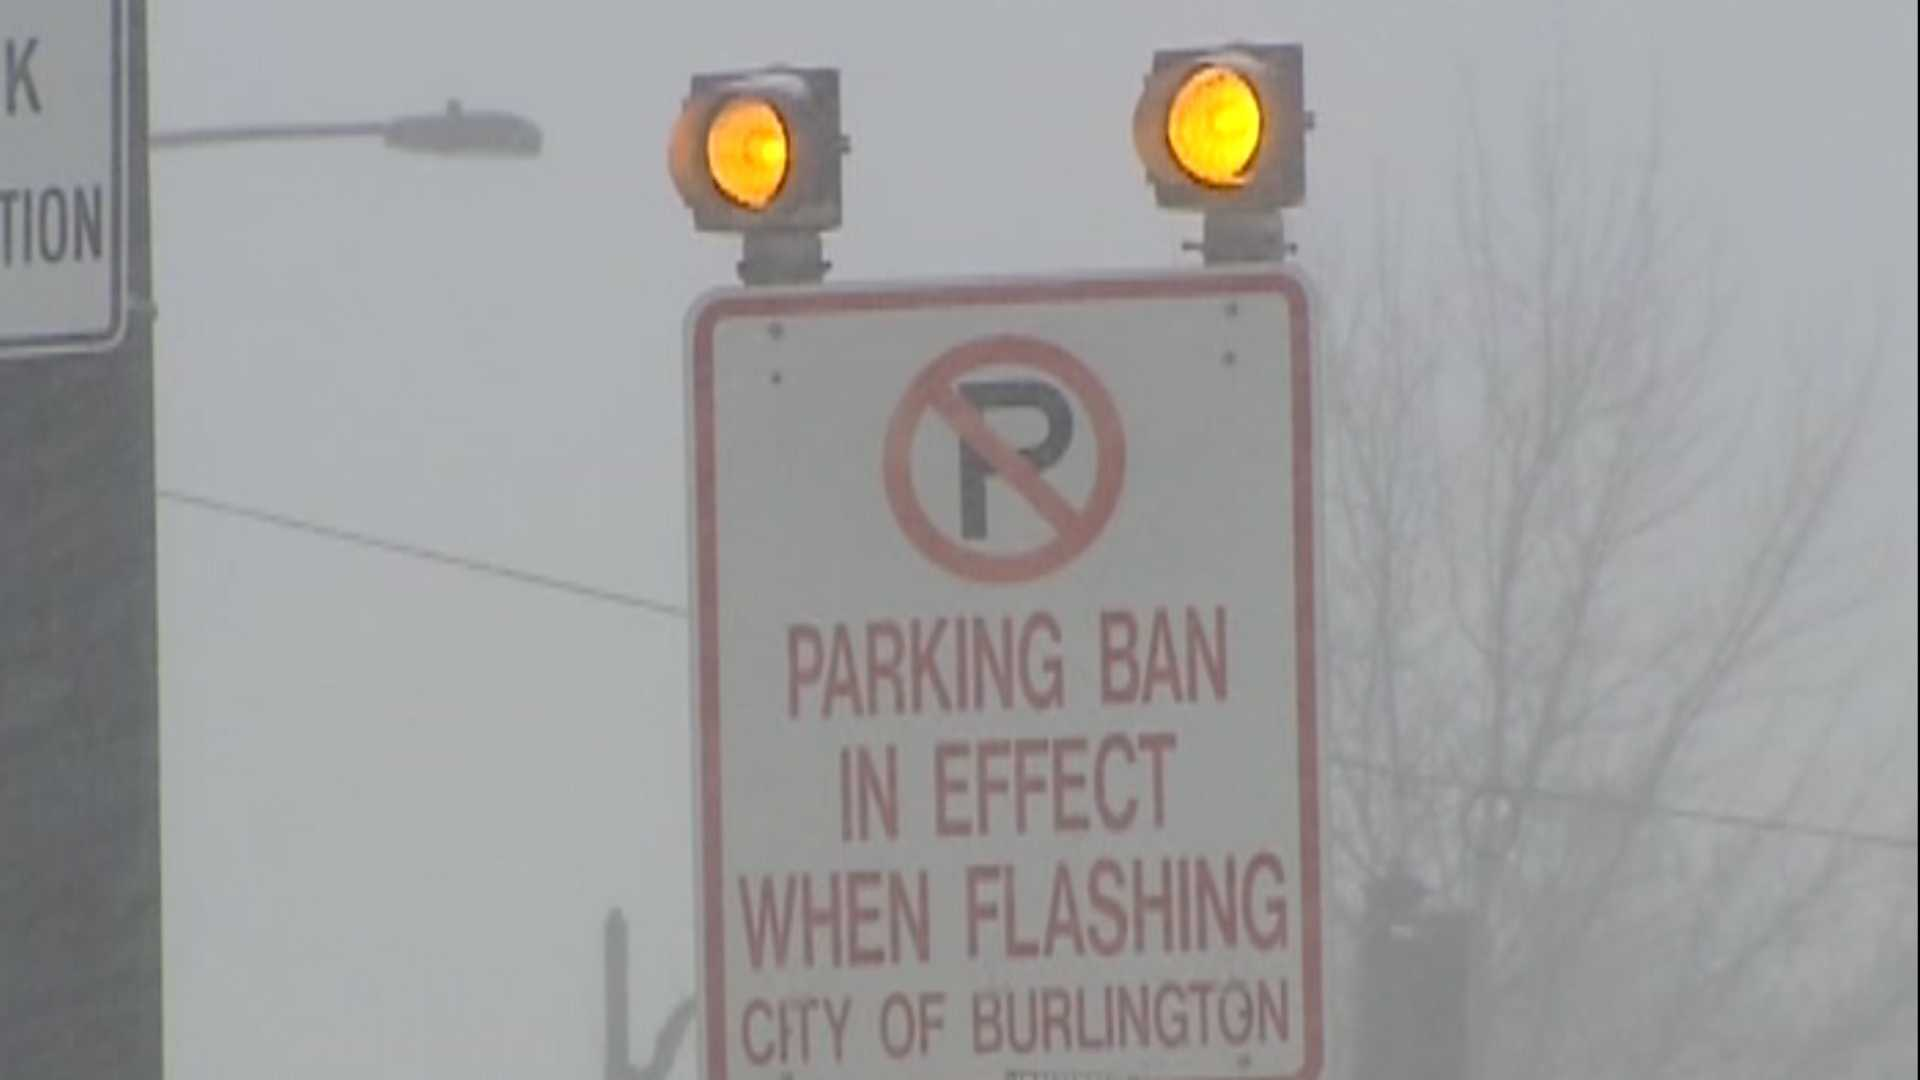 Burlington parking ban